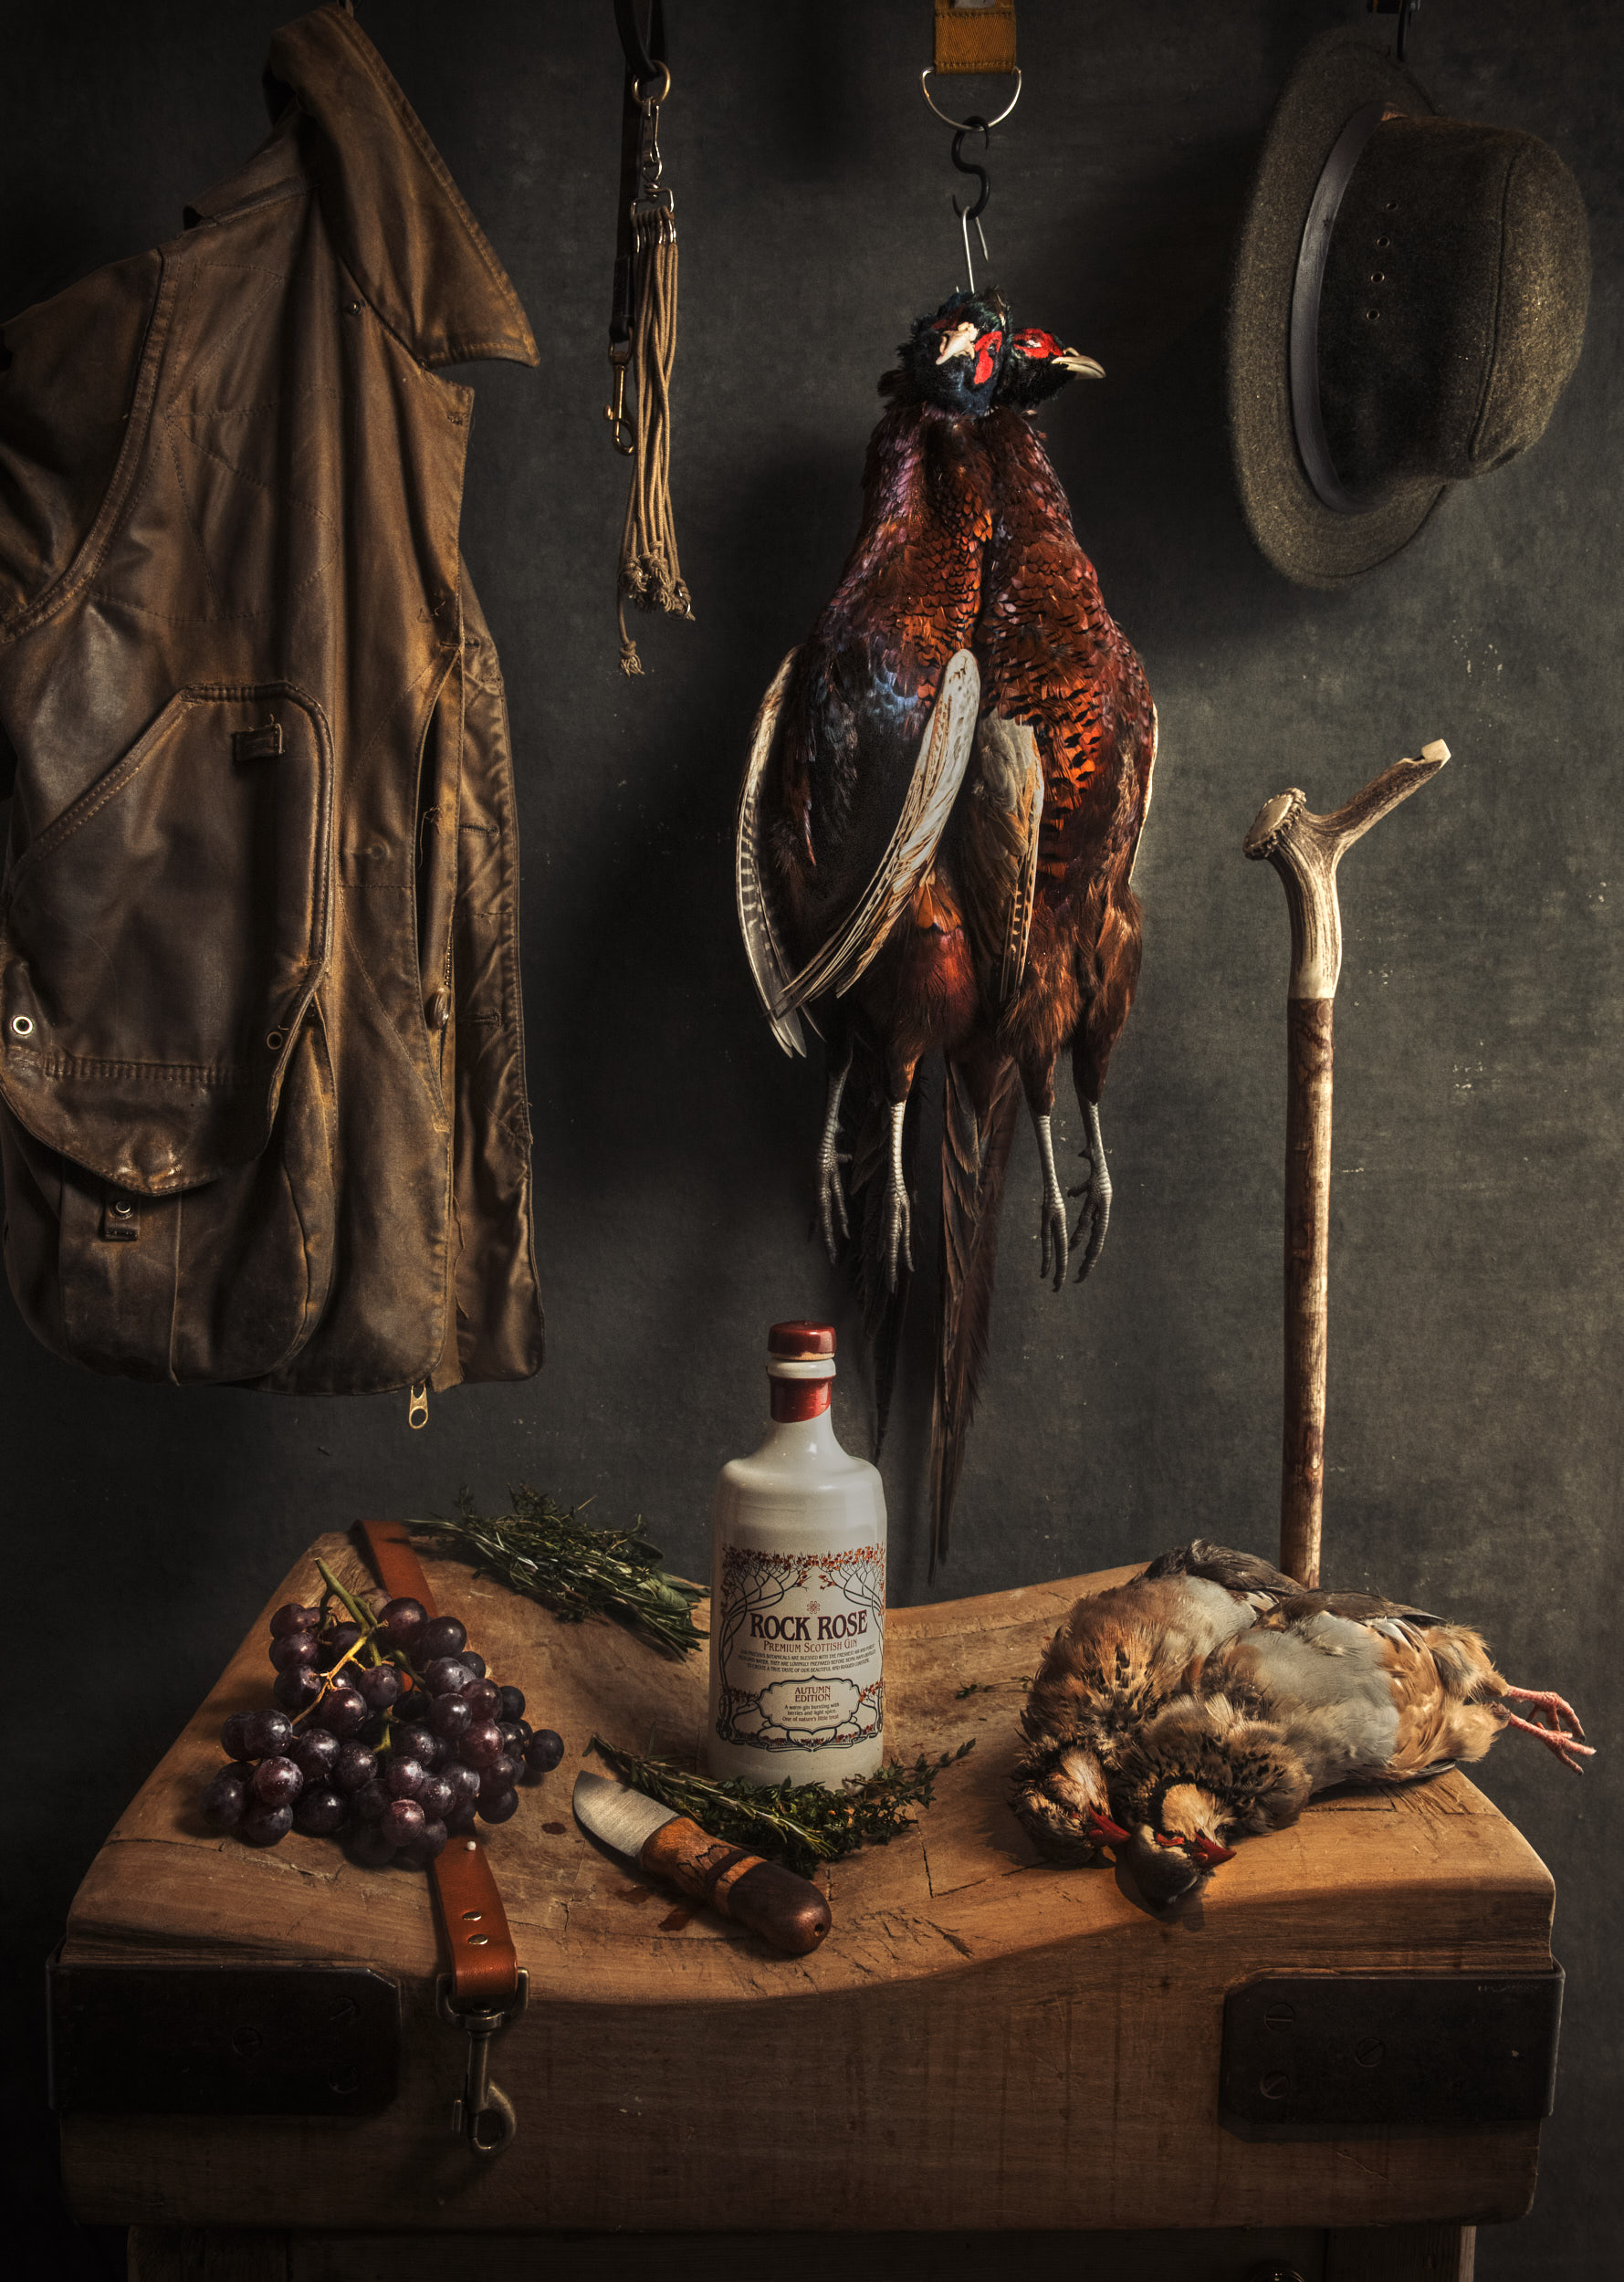 advertising commercial still life photography fine art by yorkshire photographer matthew lloyd 2.jpg